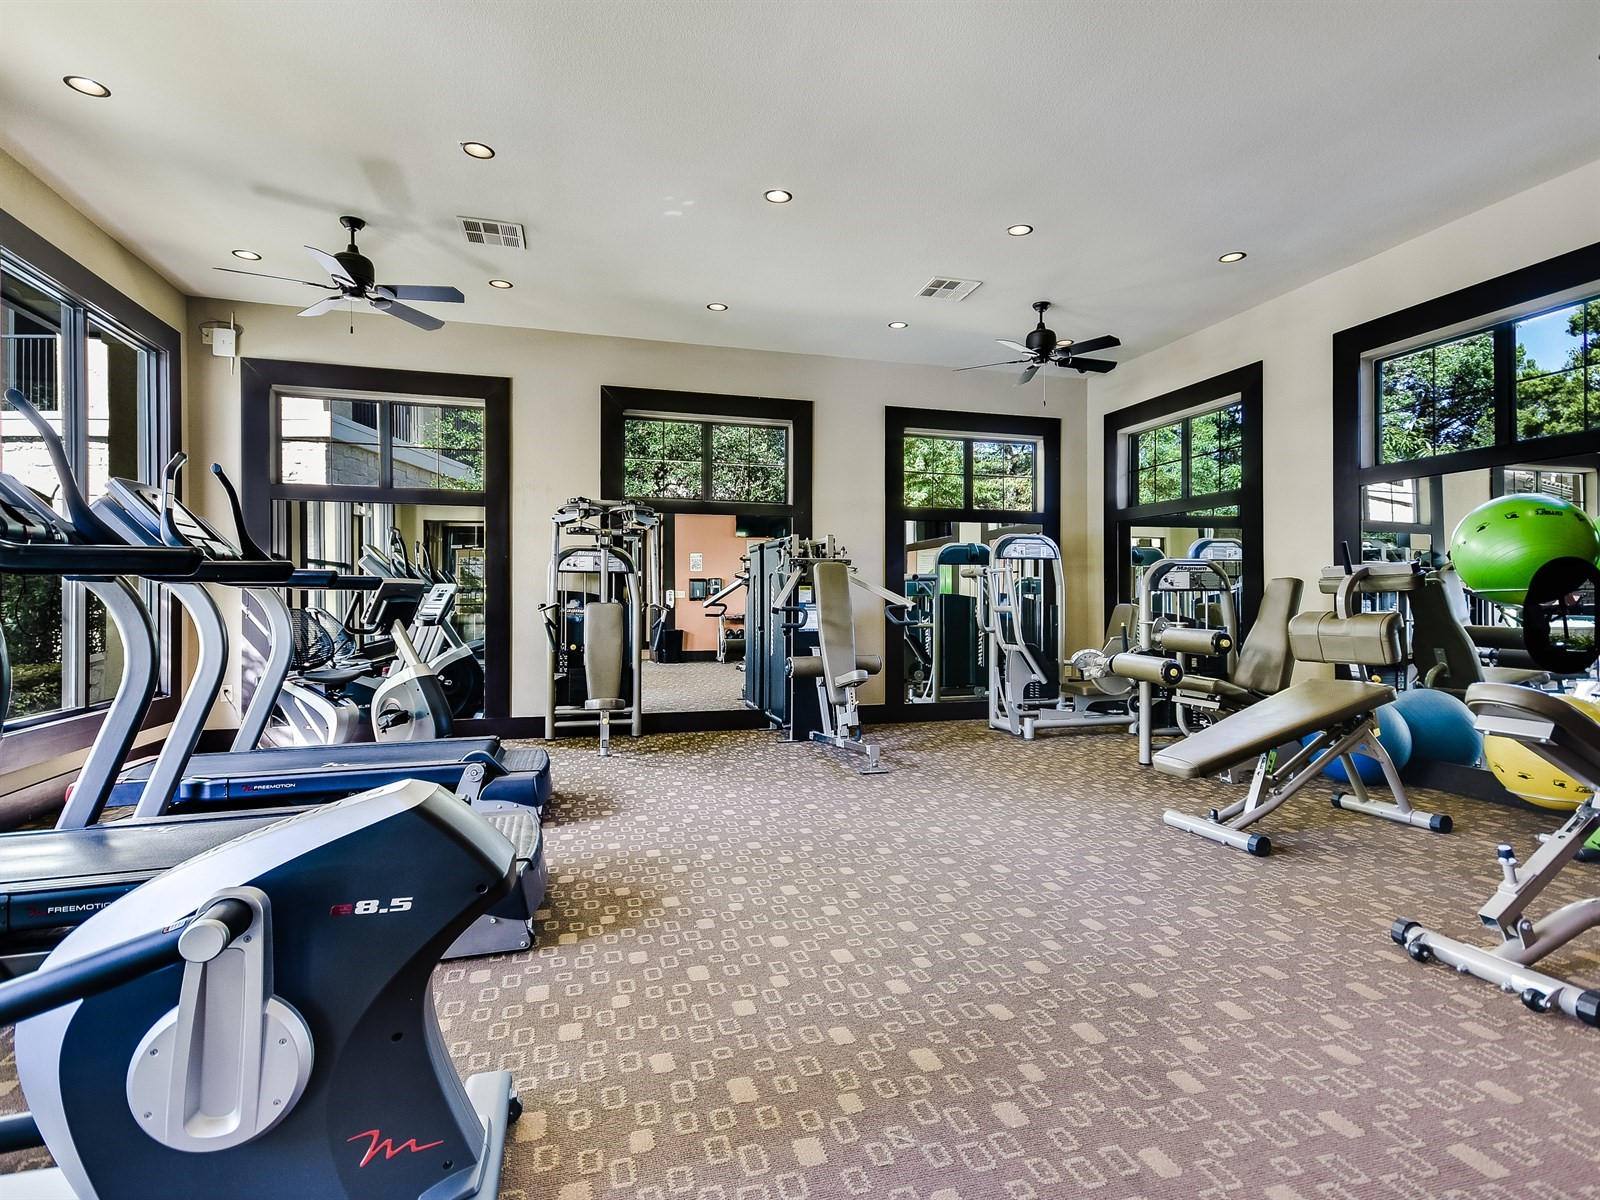 Fitness Center - Amenities at 3500 Westlake Apartments in Austin, TX